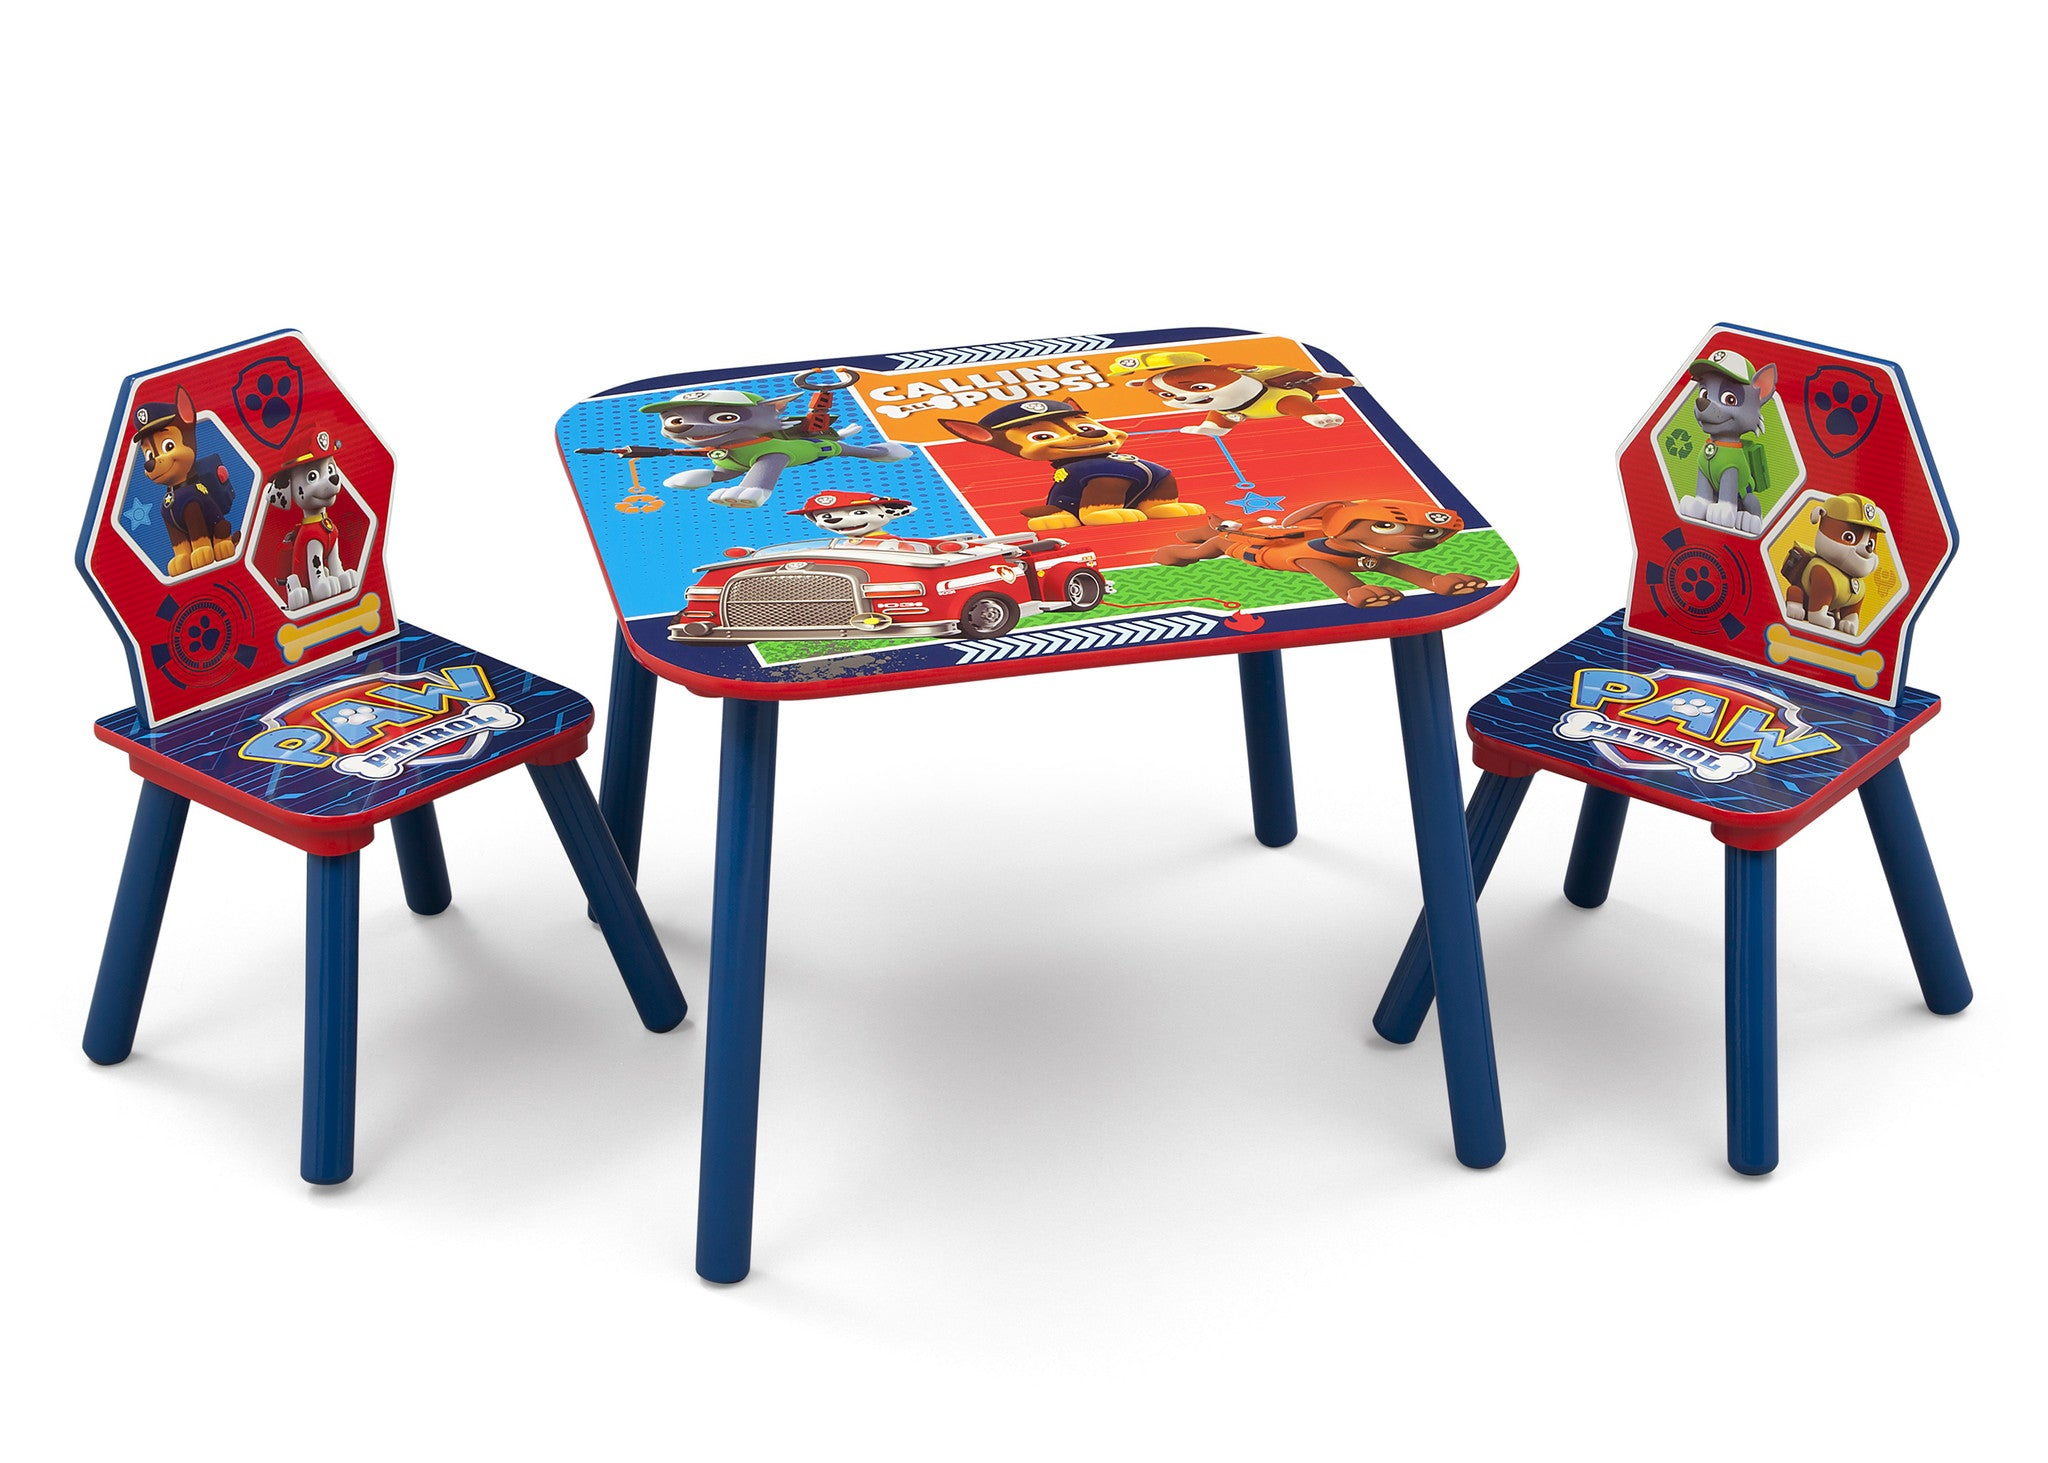 Delta Children PAW Patrol Table and Chair Set, Left View a1a